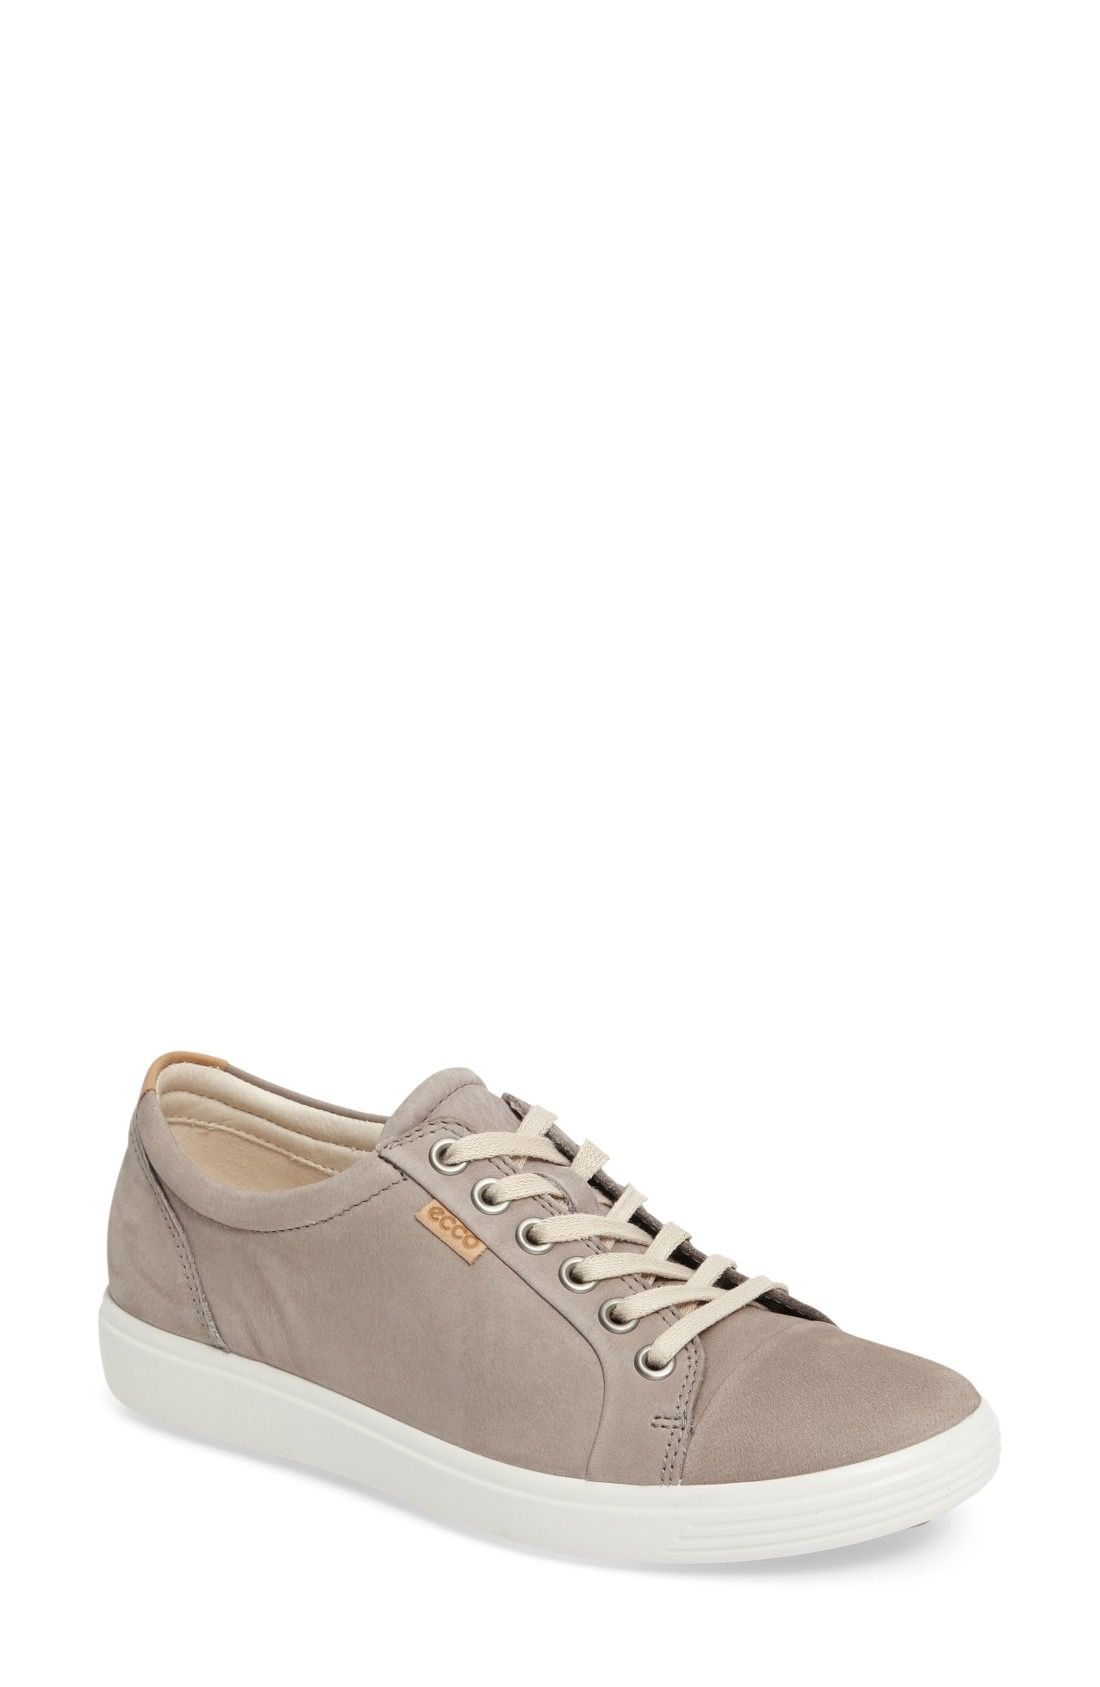 285058e95 ECCO 'Soft 7' Cap Toe Sneaker (Women) available at #Nordstrom   My ...